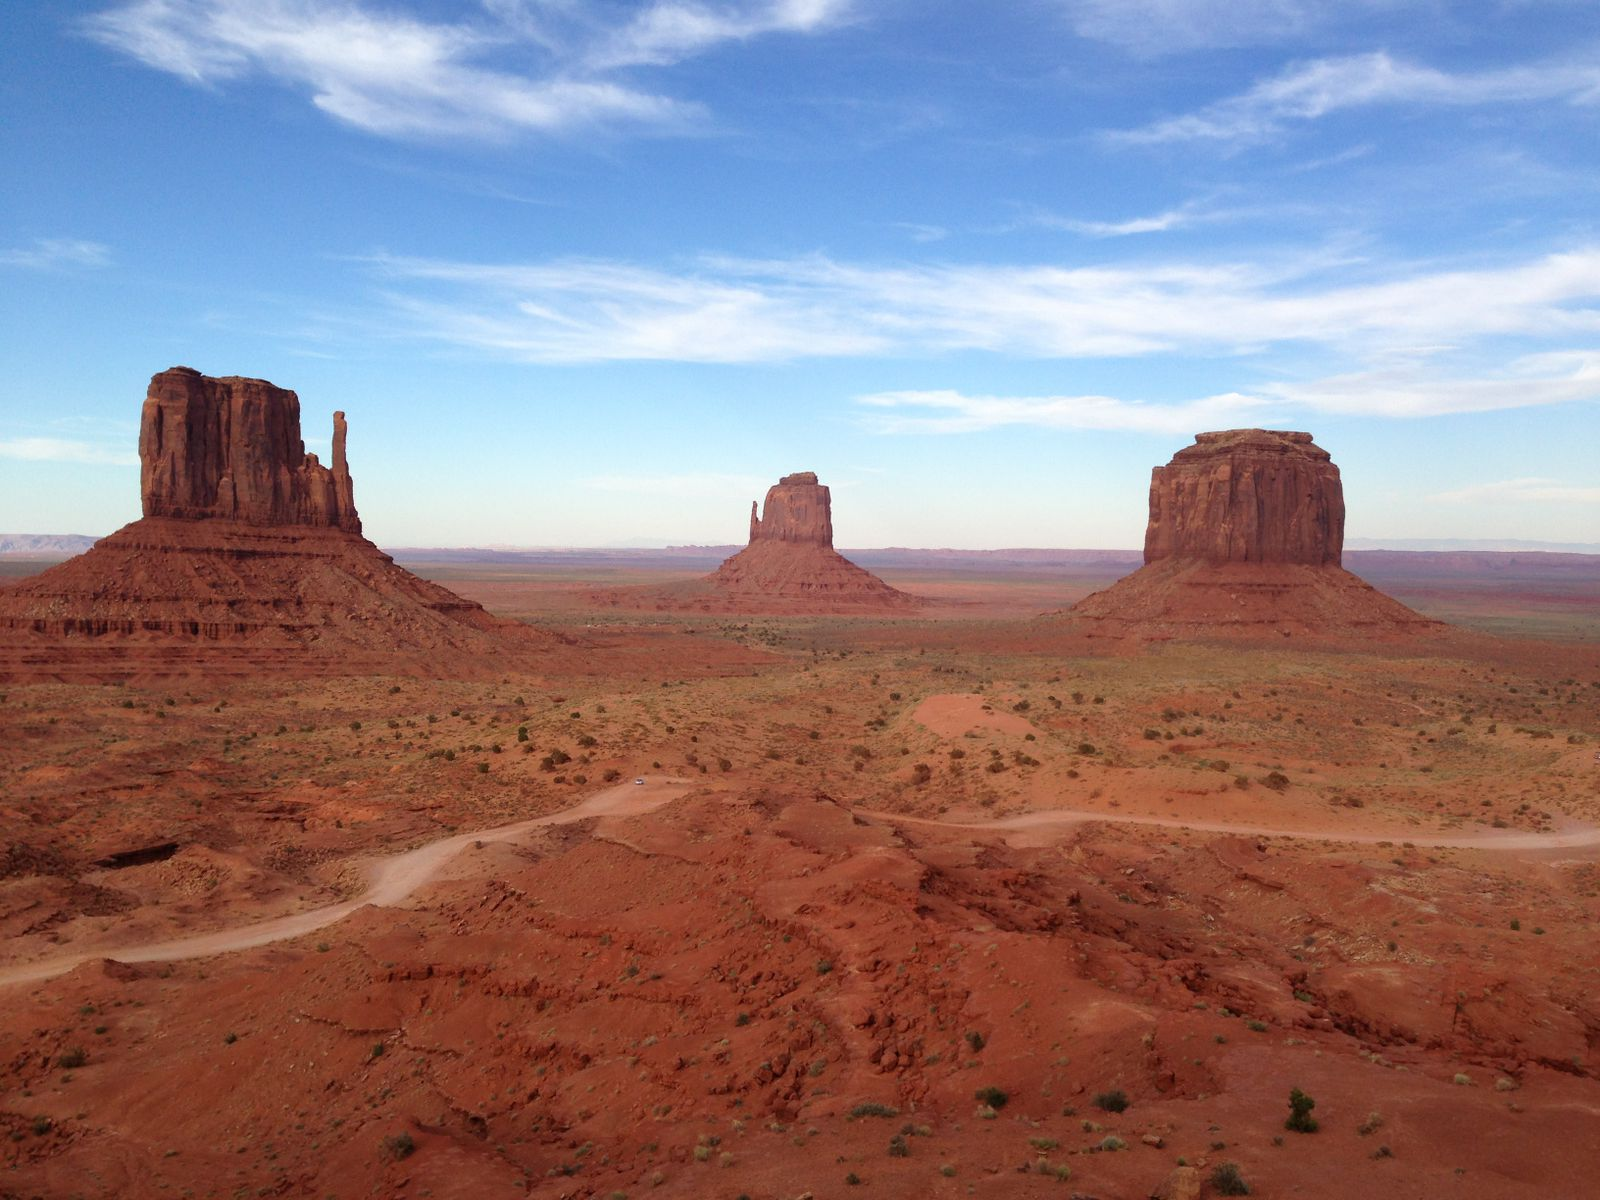 J-3 : GRAND CANYON - MONUMENT VALLEY